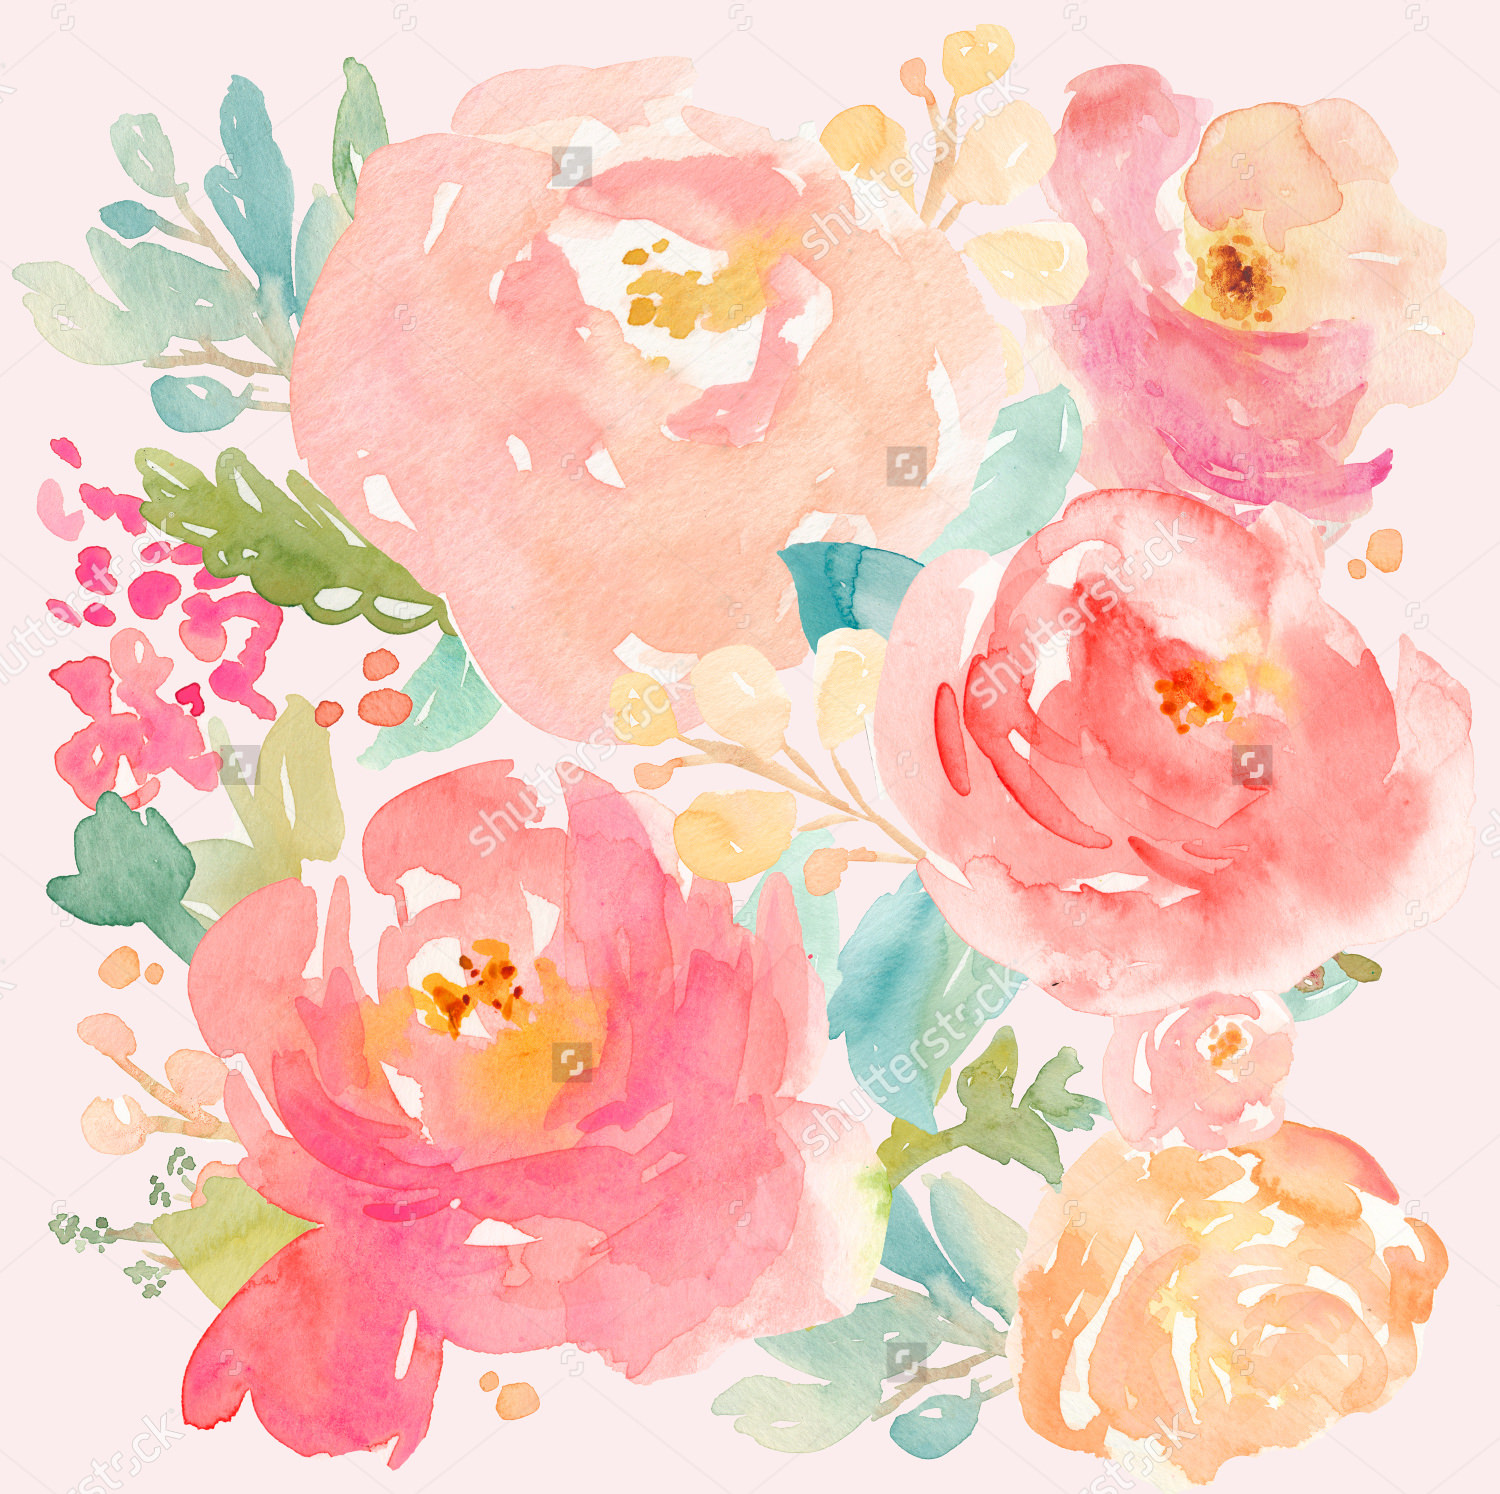 Pictures Of Pretty Flowers To Paint Kidskunstfo